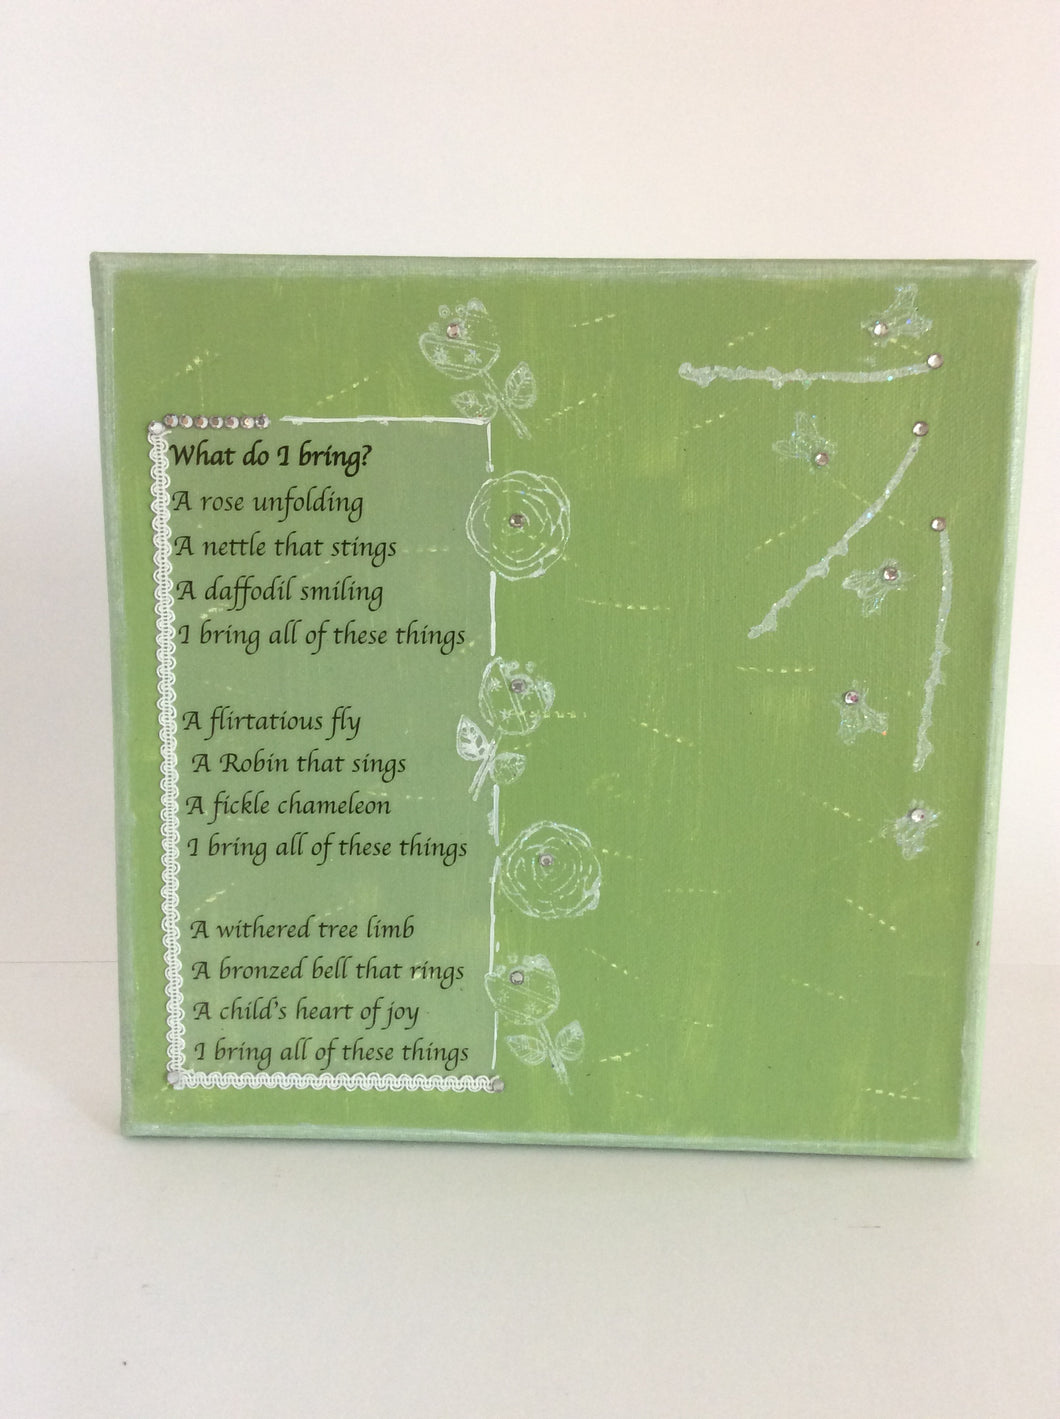 What do I bring is an original poem on canvas from poempieces.com in spring green